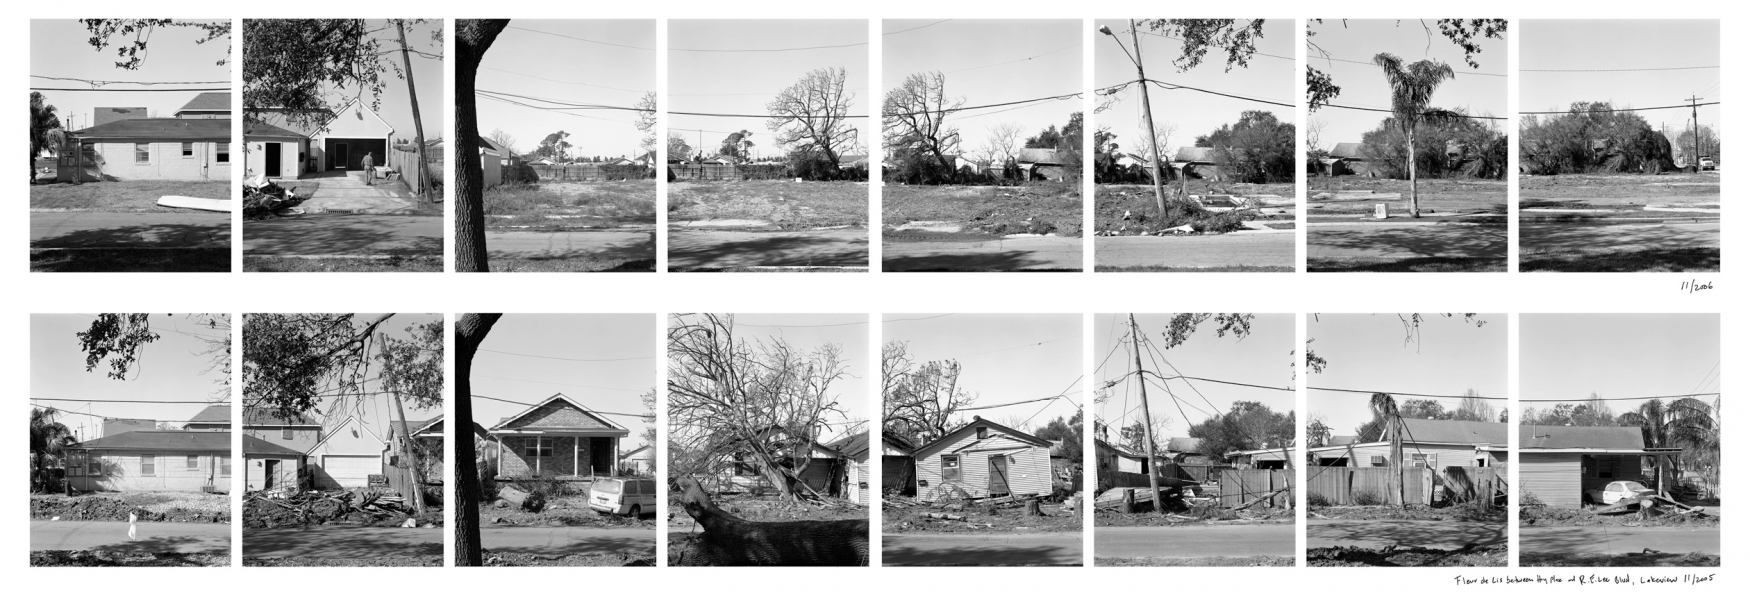 New Orleans Fleur de Lise Blvd., Lakeview, 2006 (above) and 2005 (below)